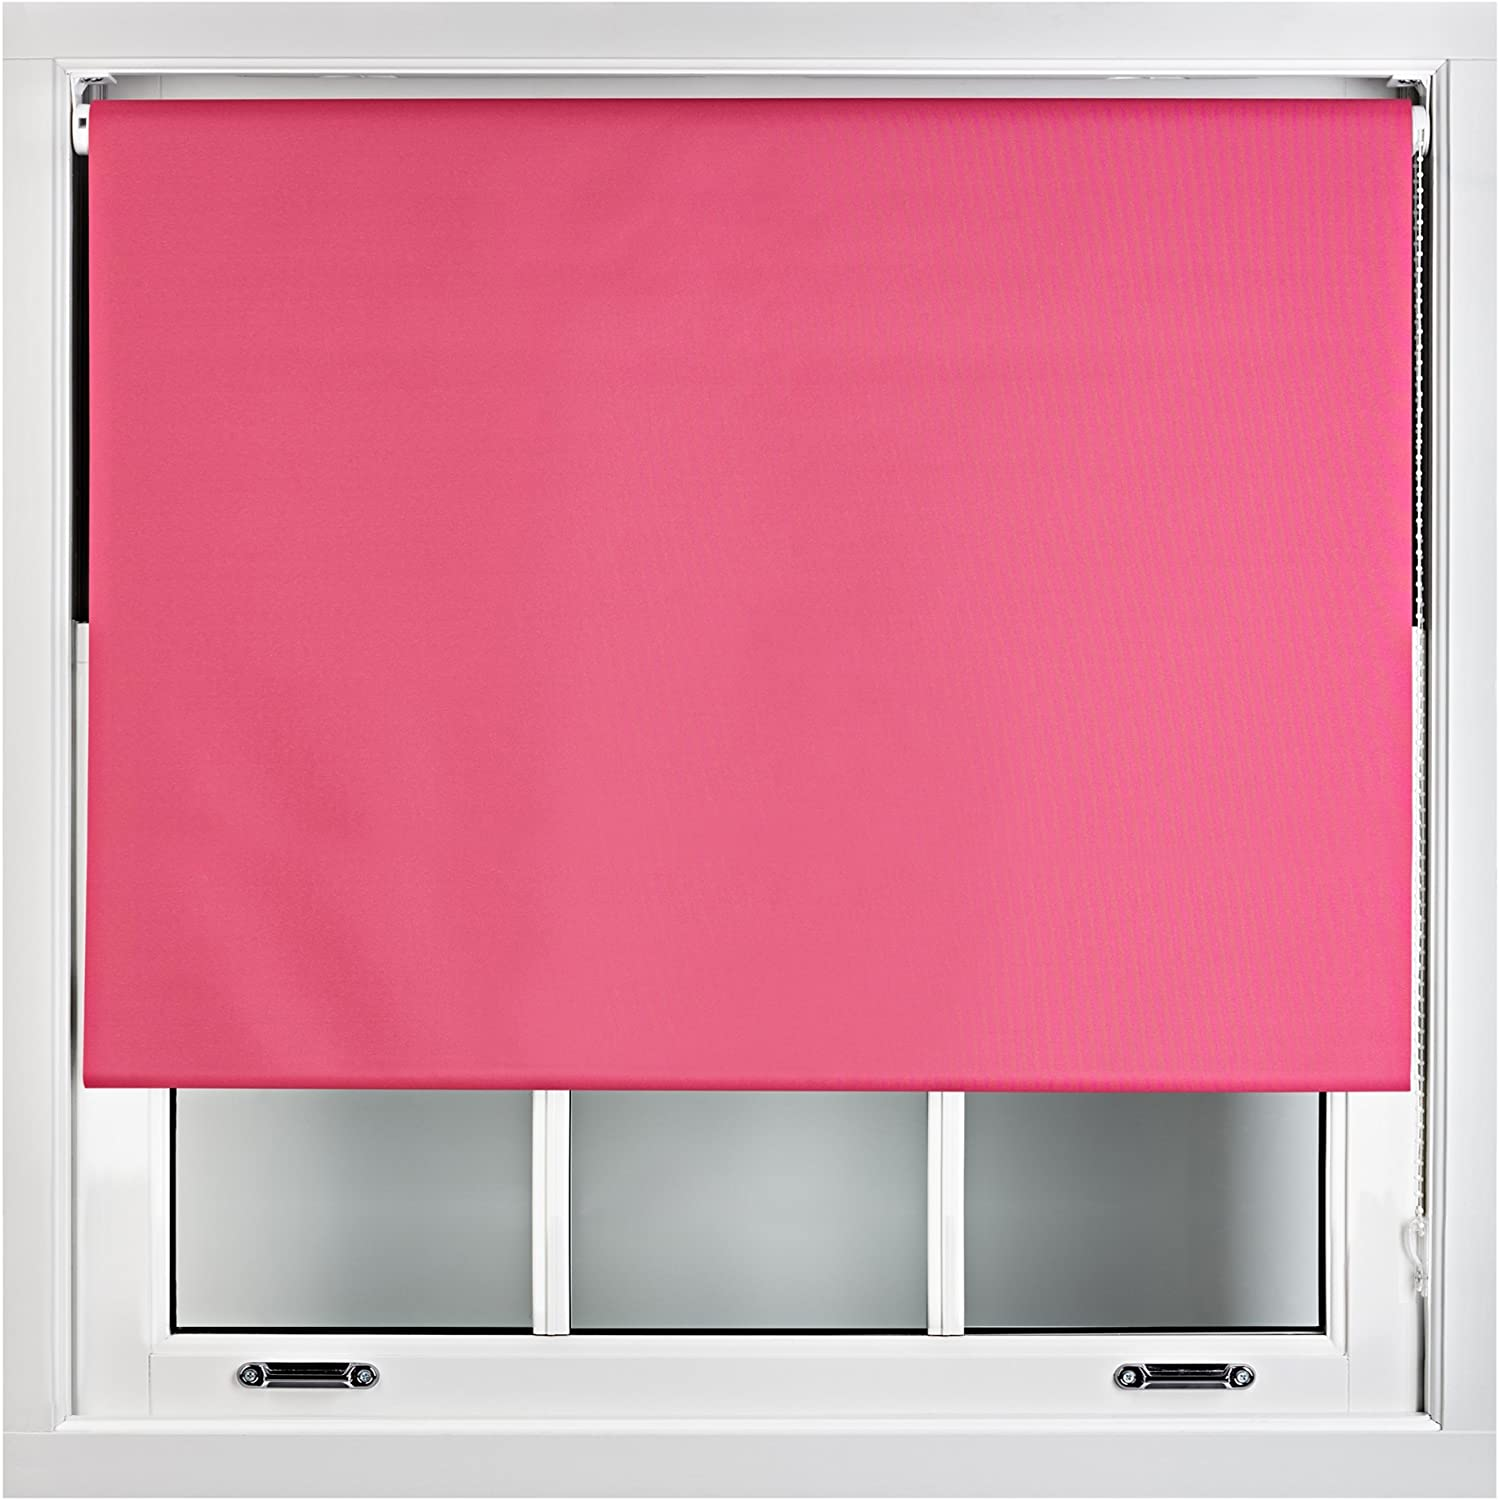 60cm x 165cm FURNISHED 100/% Blackout Roller Blinds Made to Measure Metal Fittings Included Navy